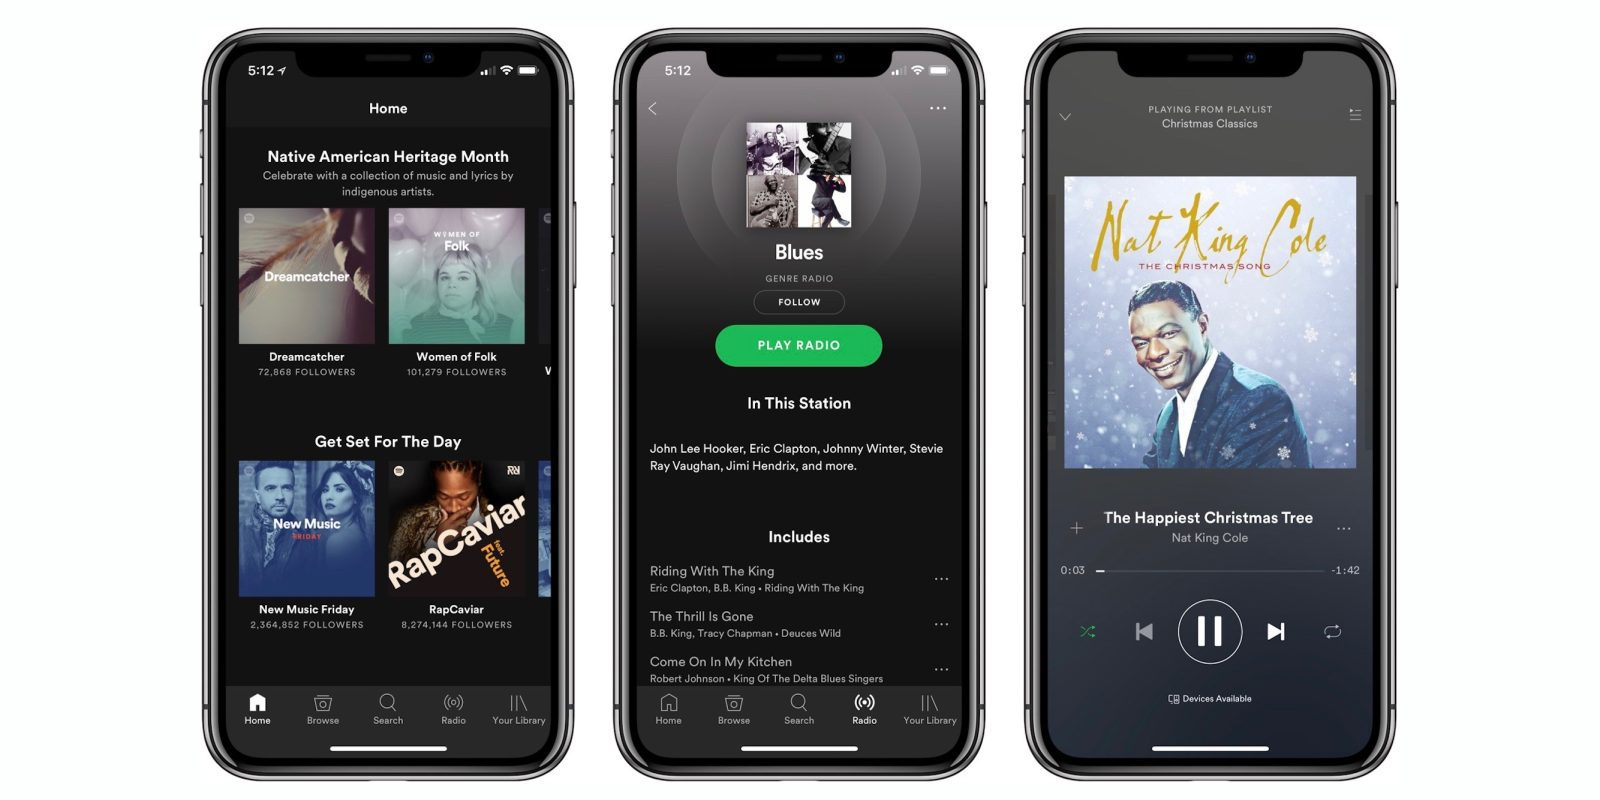 Download Spotify++ iOS 12 IPA for iPhone, iPad, iPod - DroidOpinions